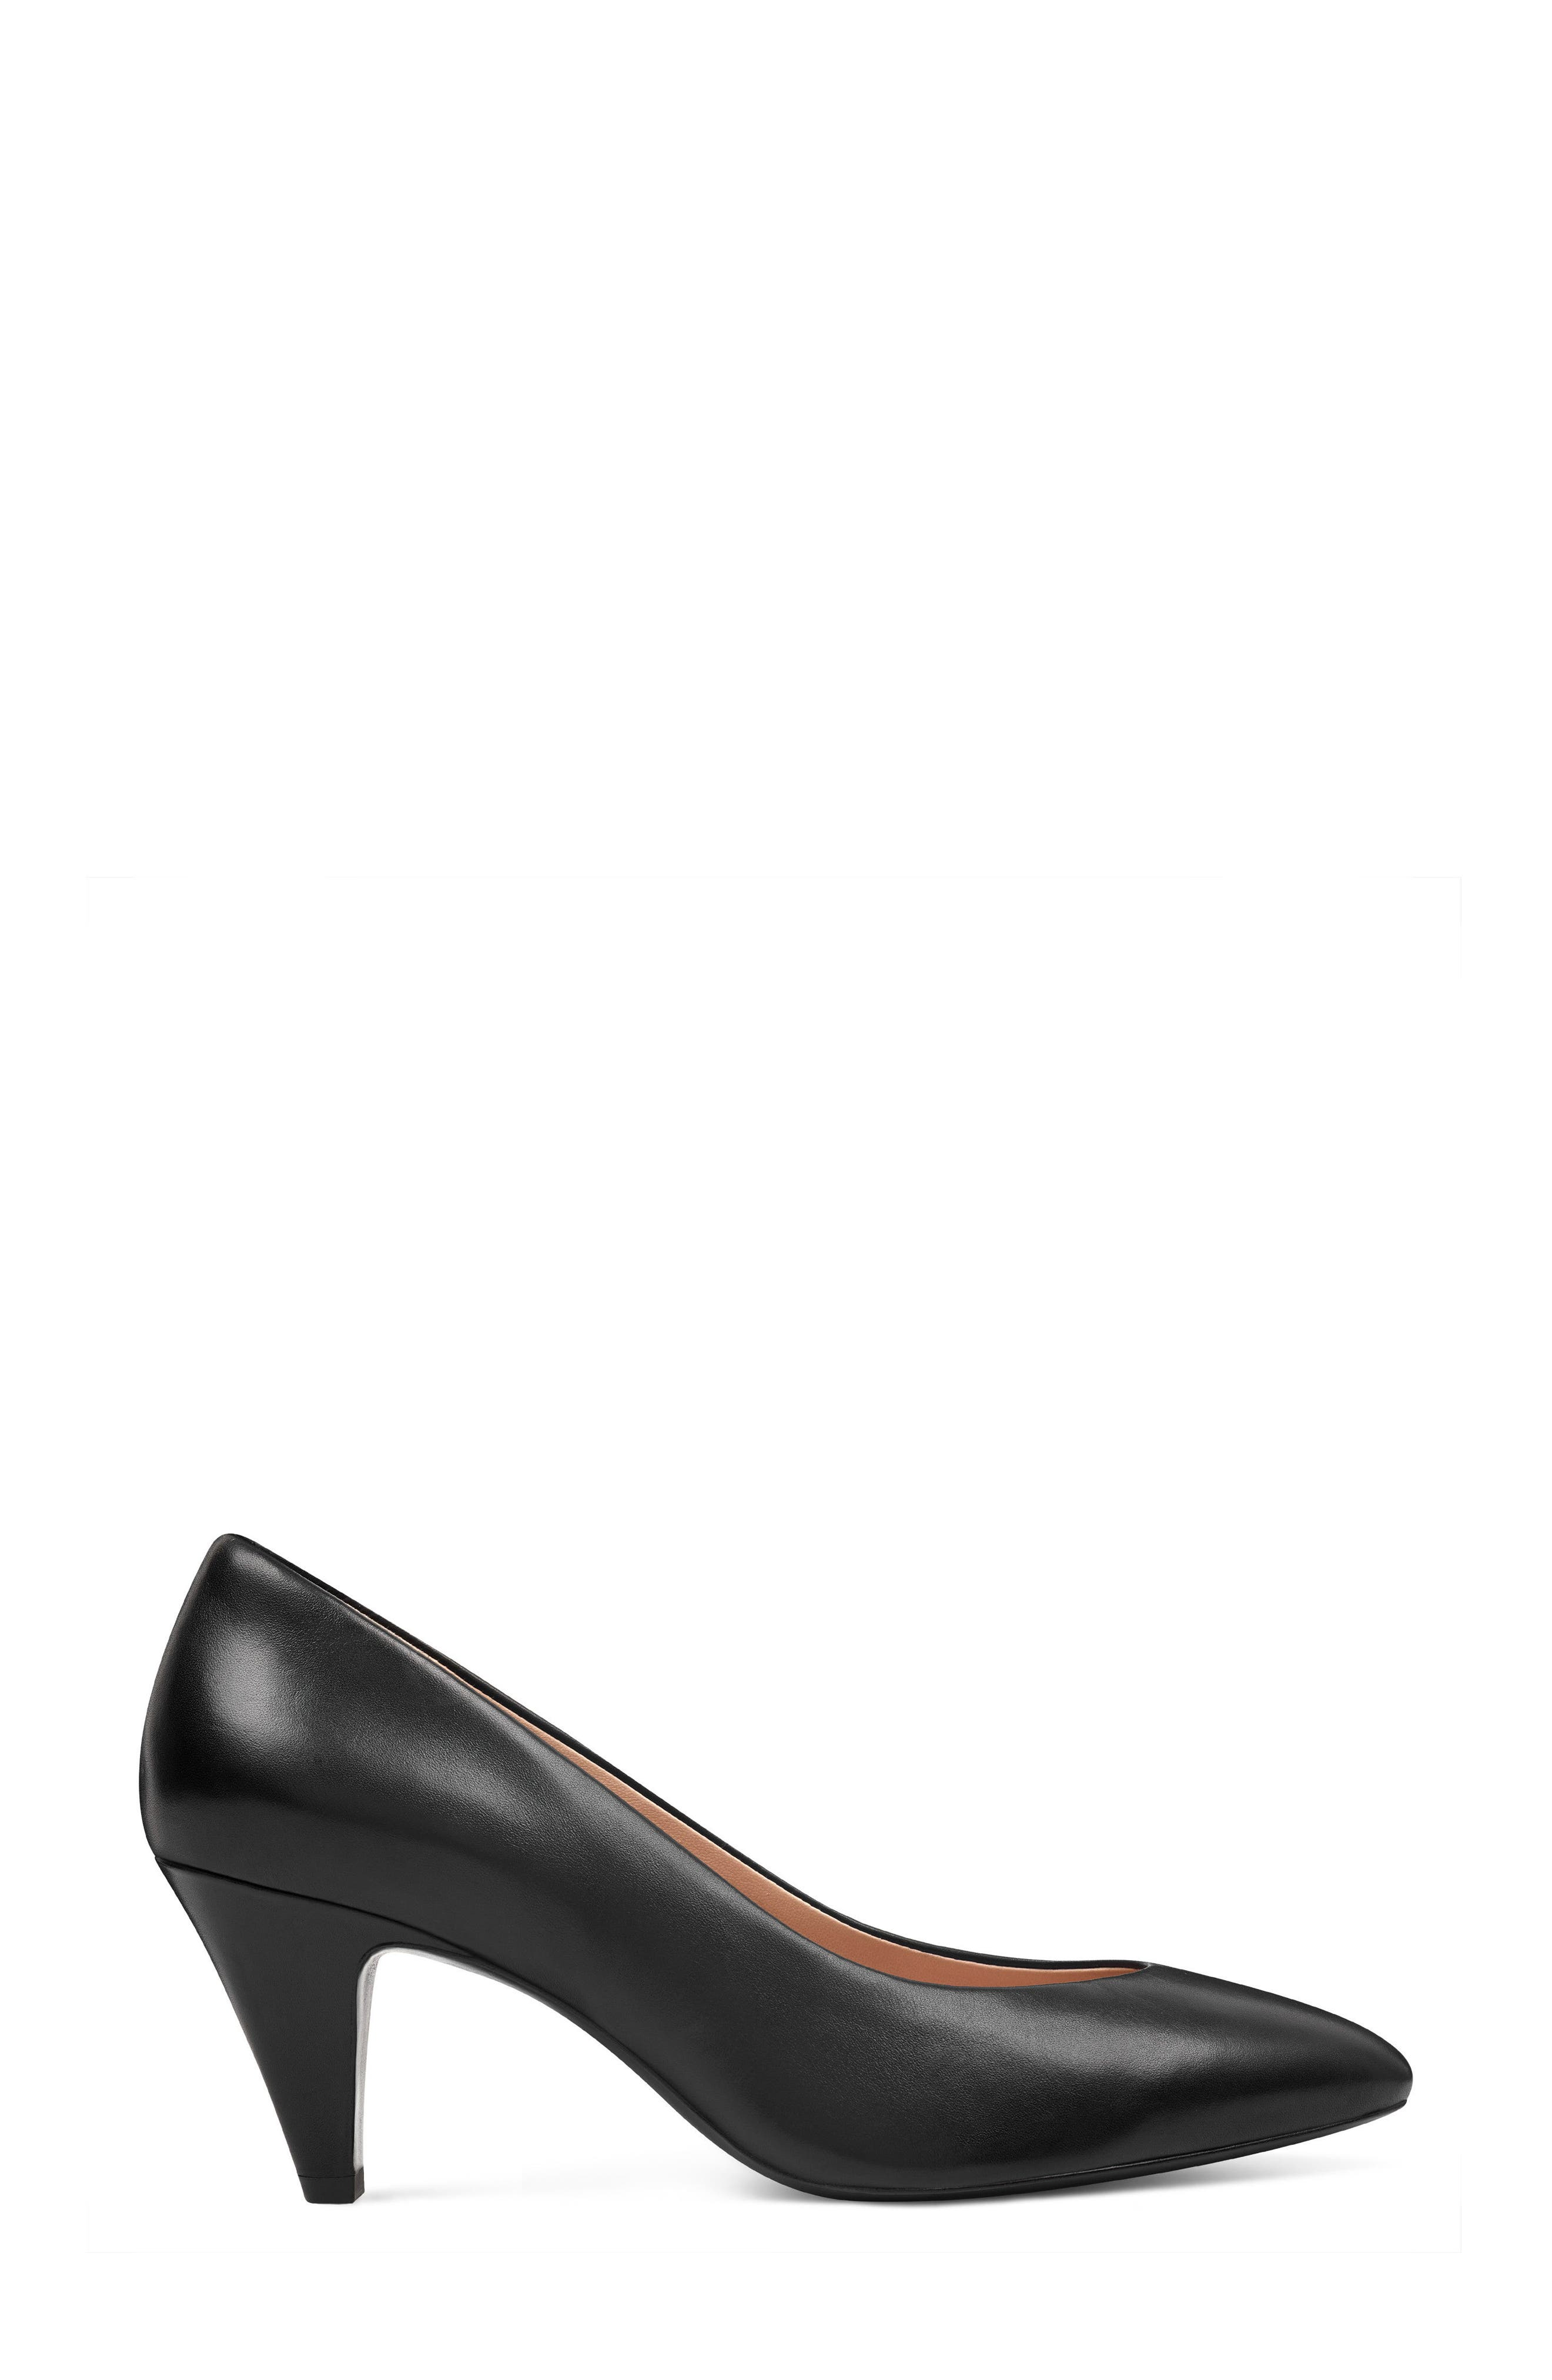 Faith - 40th Anniversary Capsule Collection Pump,                             Alternate thumbnail 3, color,                             BLACK LEATHER